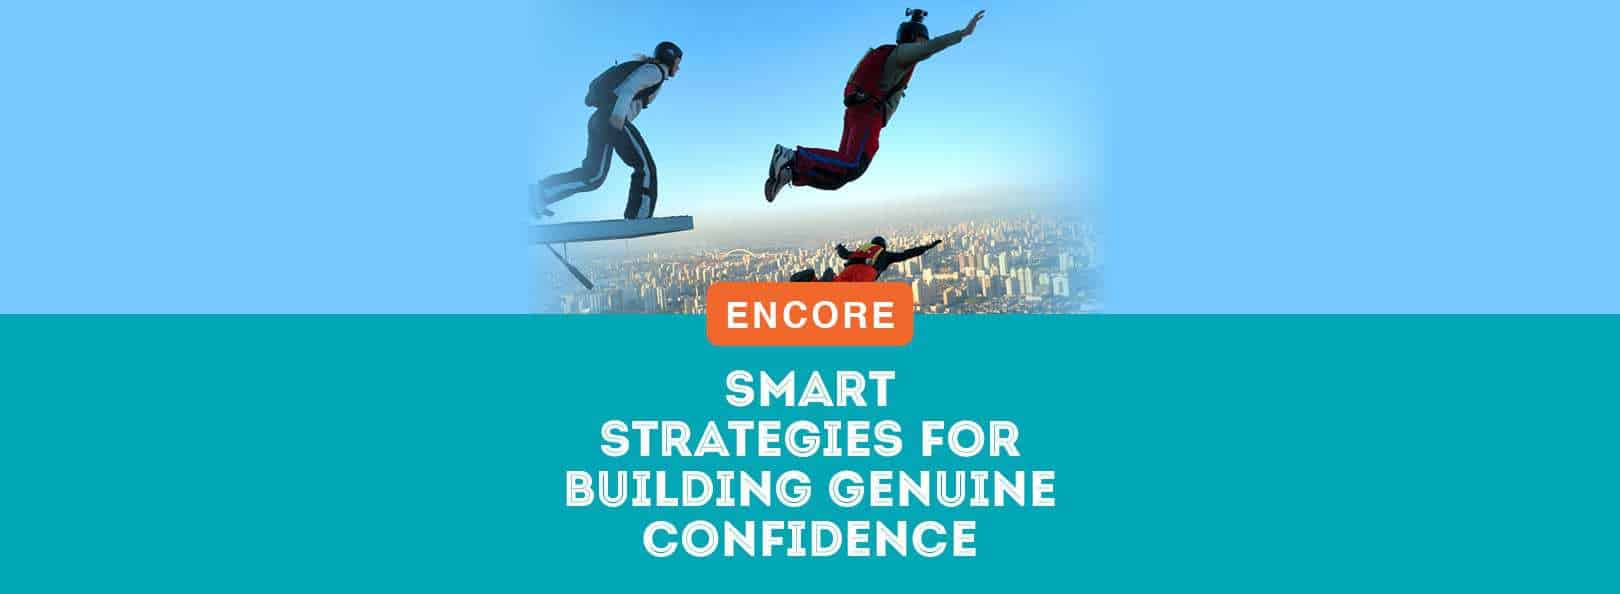 ENCORE: Smart Strategies for Building Genuine Confidence